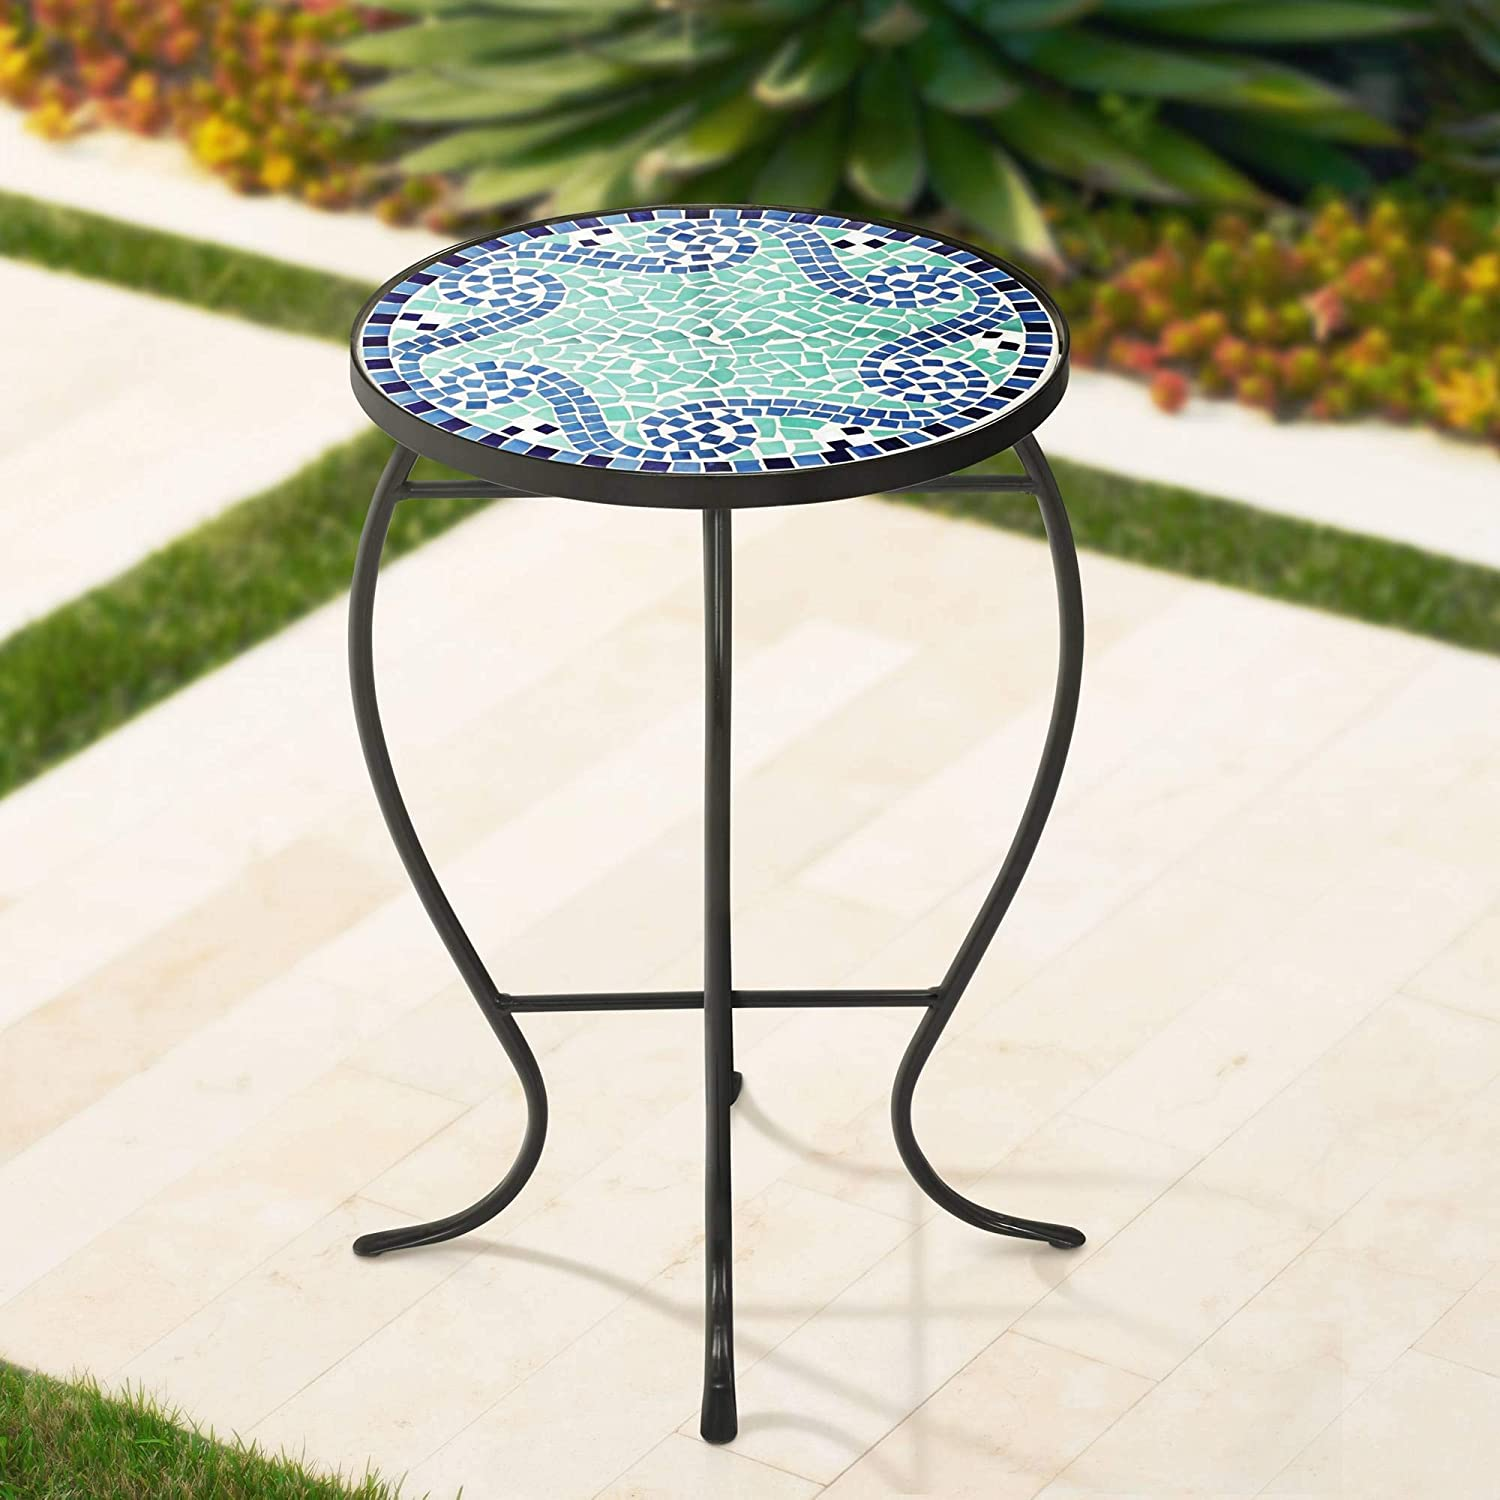 Ocean Wave Mosaic Black Iron Outdoor Accent Table - Teal Island Designs